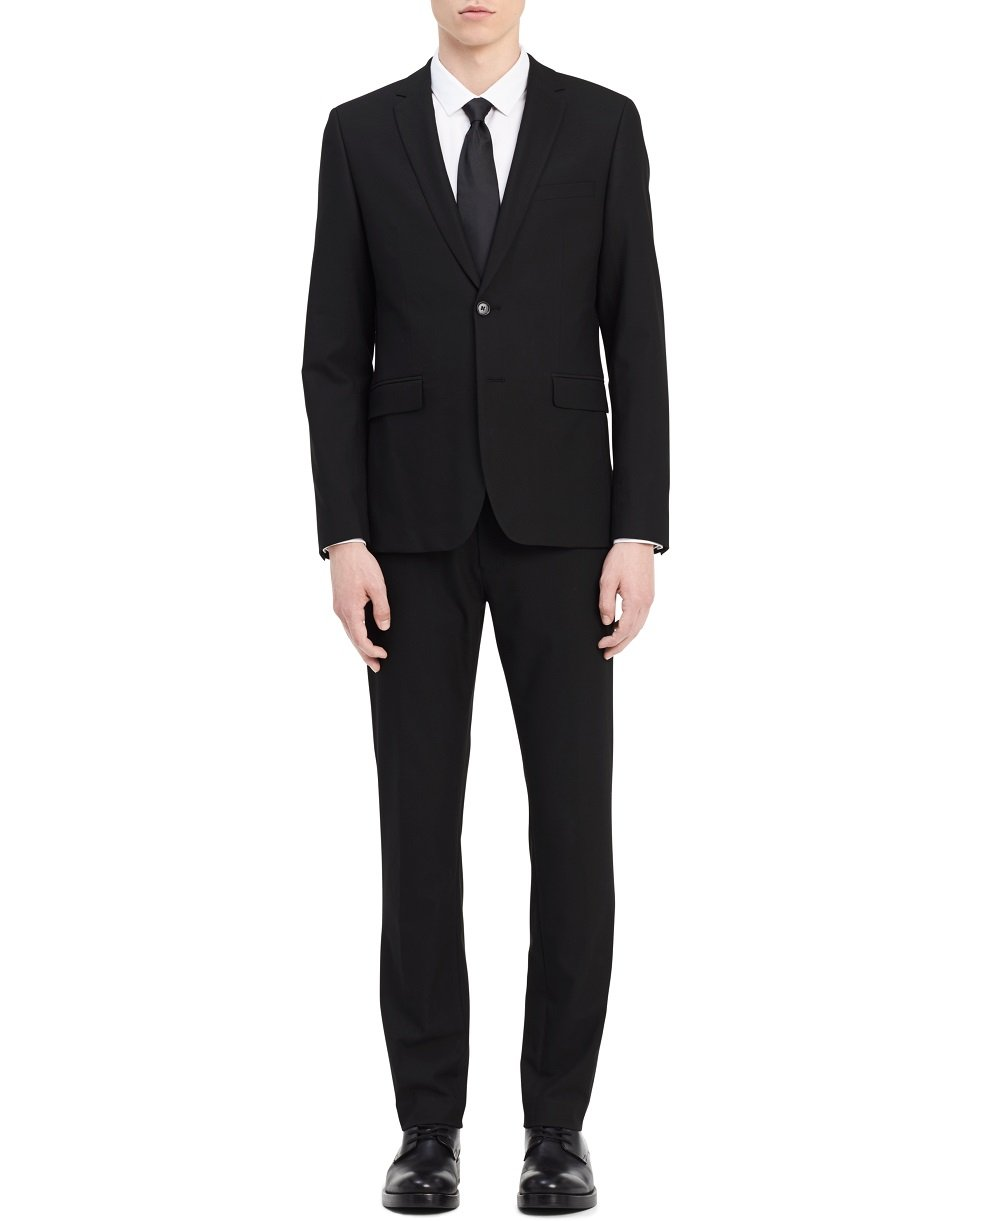 Calvin Klein Men's Infinite Slim Fit Suit Jacket 4-Way Stretch, Black, 2X-Large R